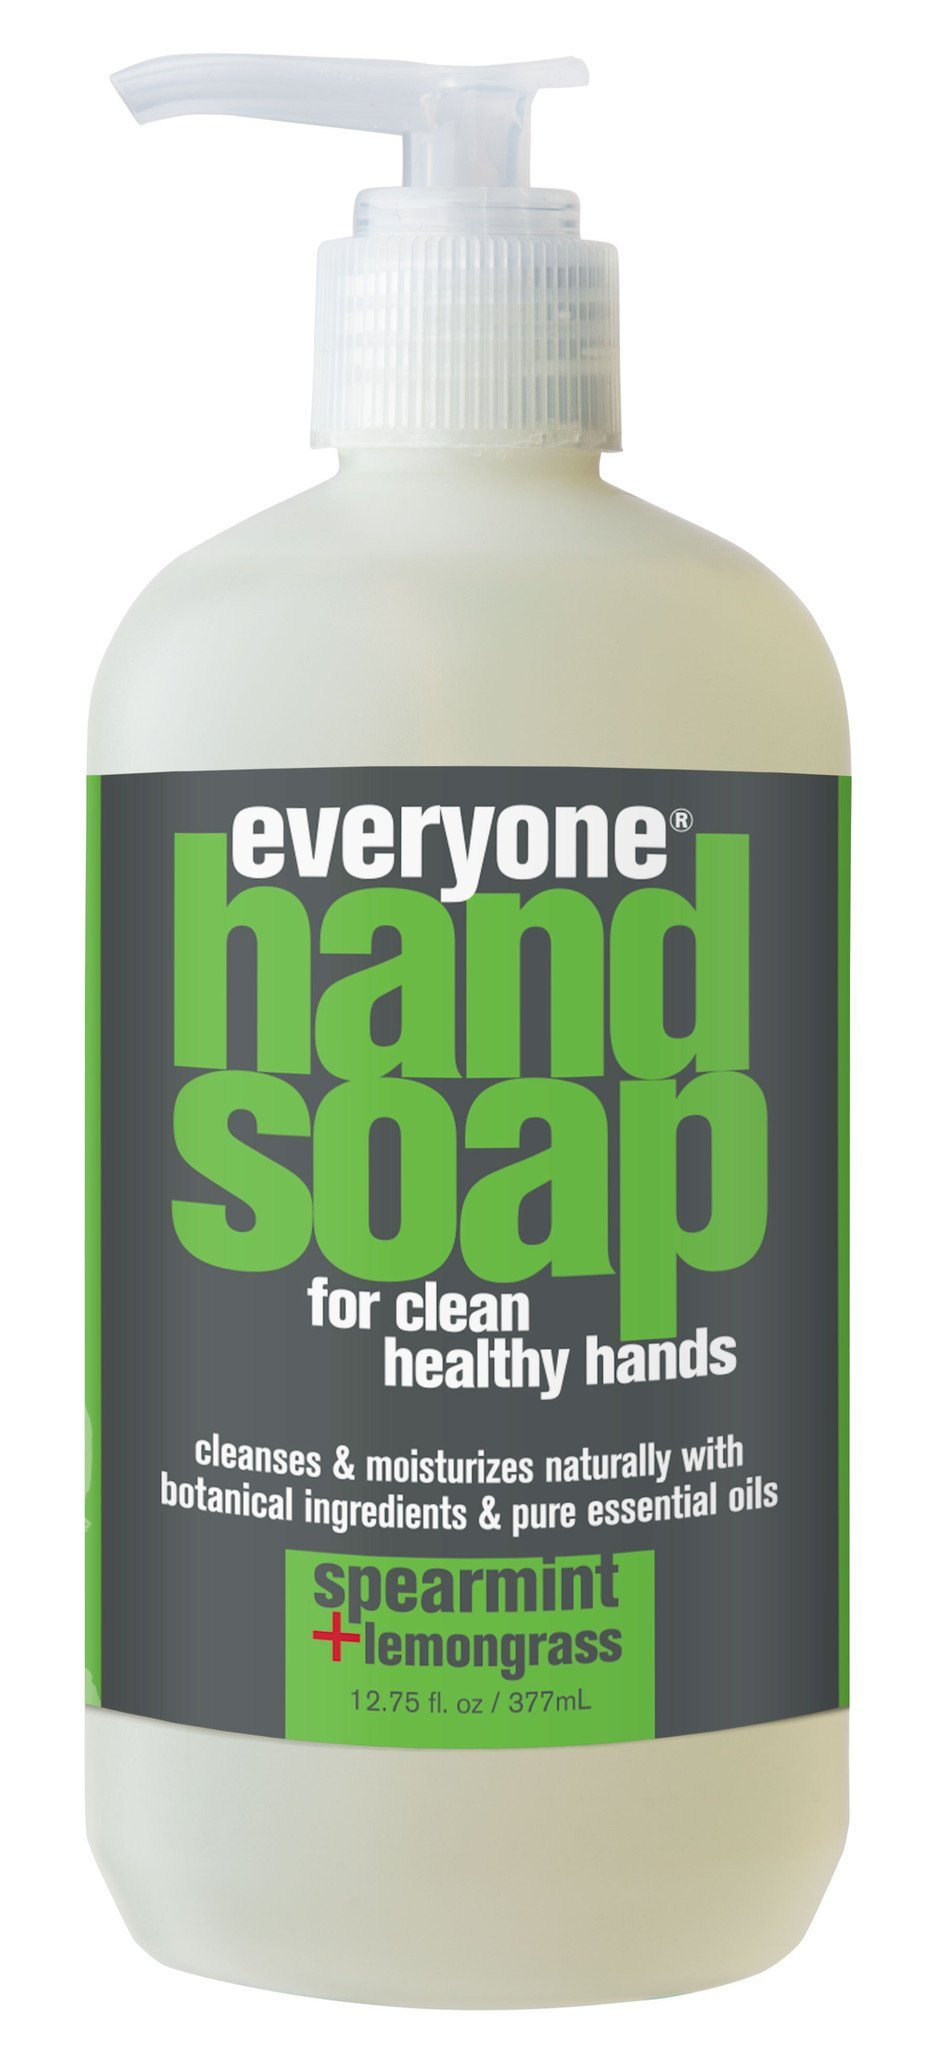 Personal Care,Gluten Free,Non GMO - EO - Everyone Spearmint & Lemongrass Hand Soap, 377ml